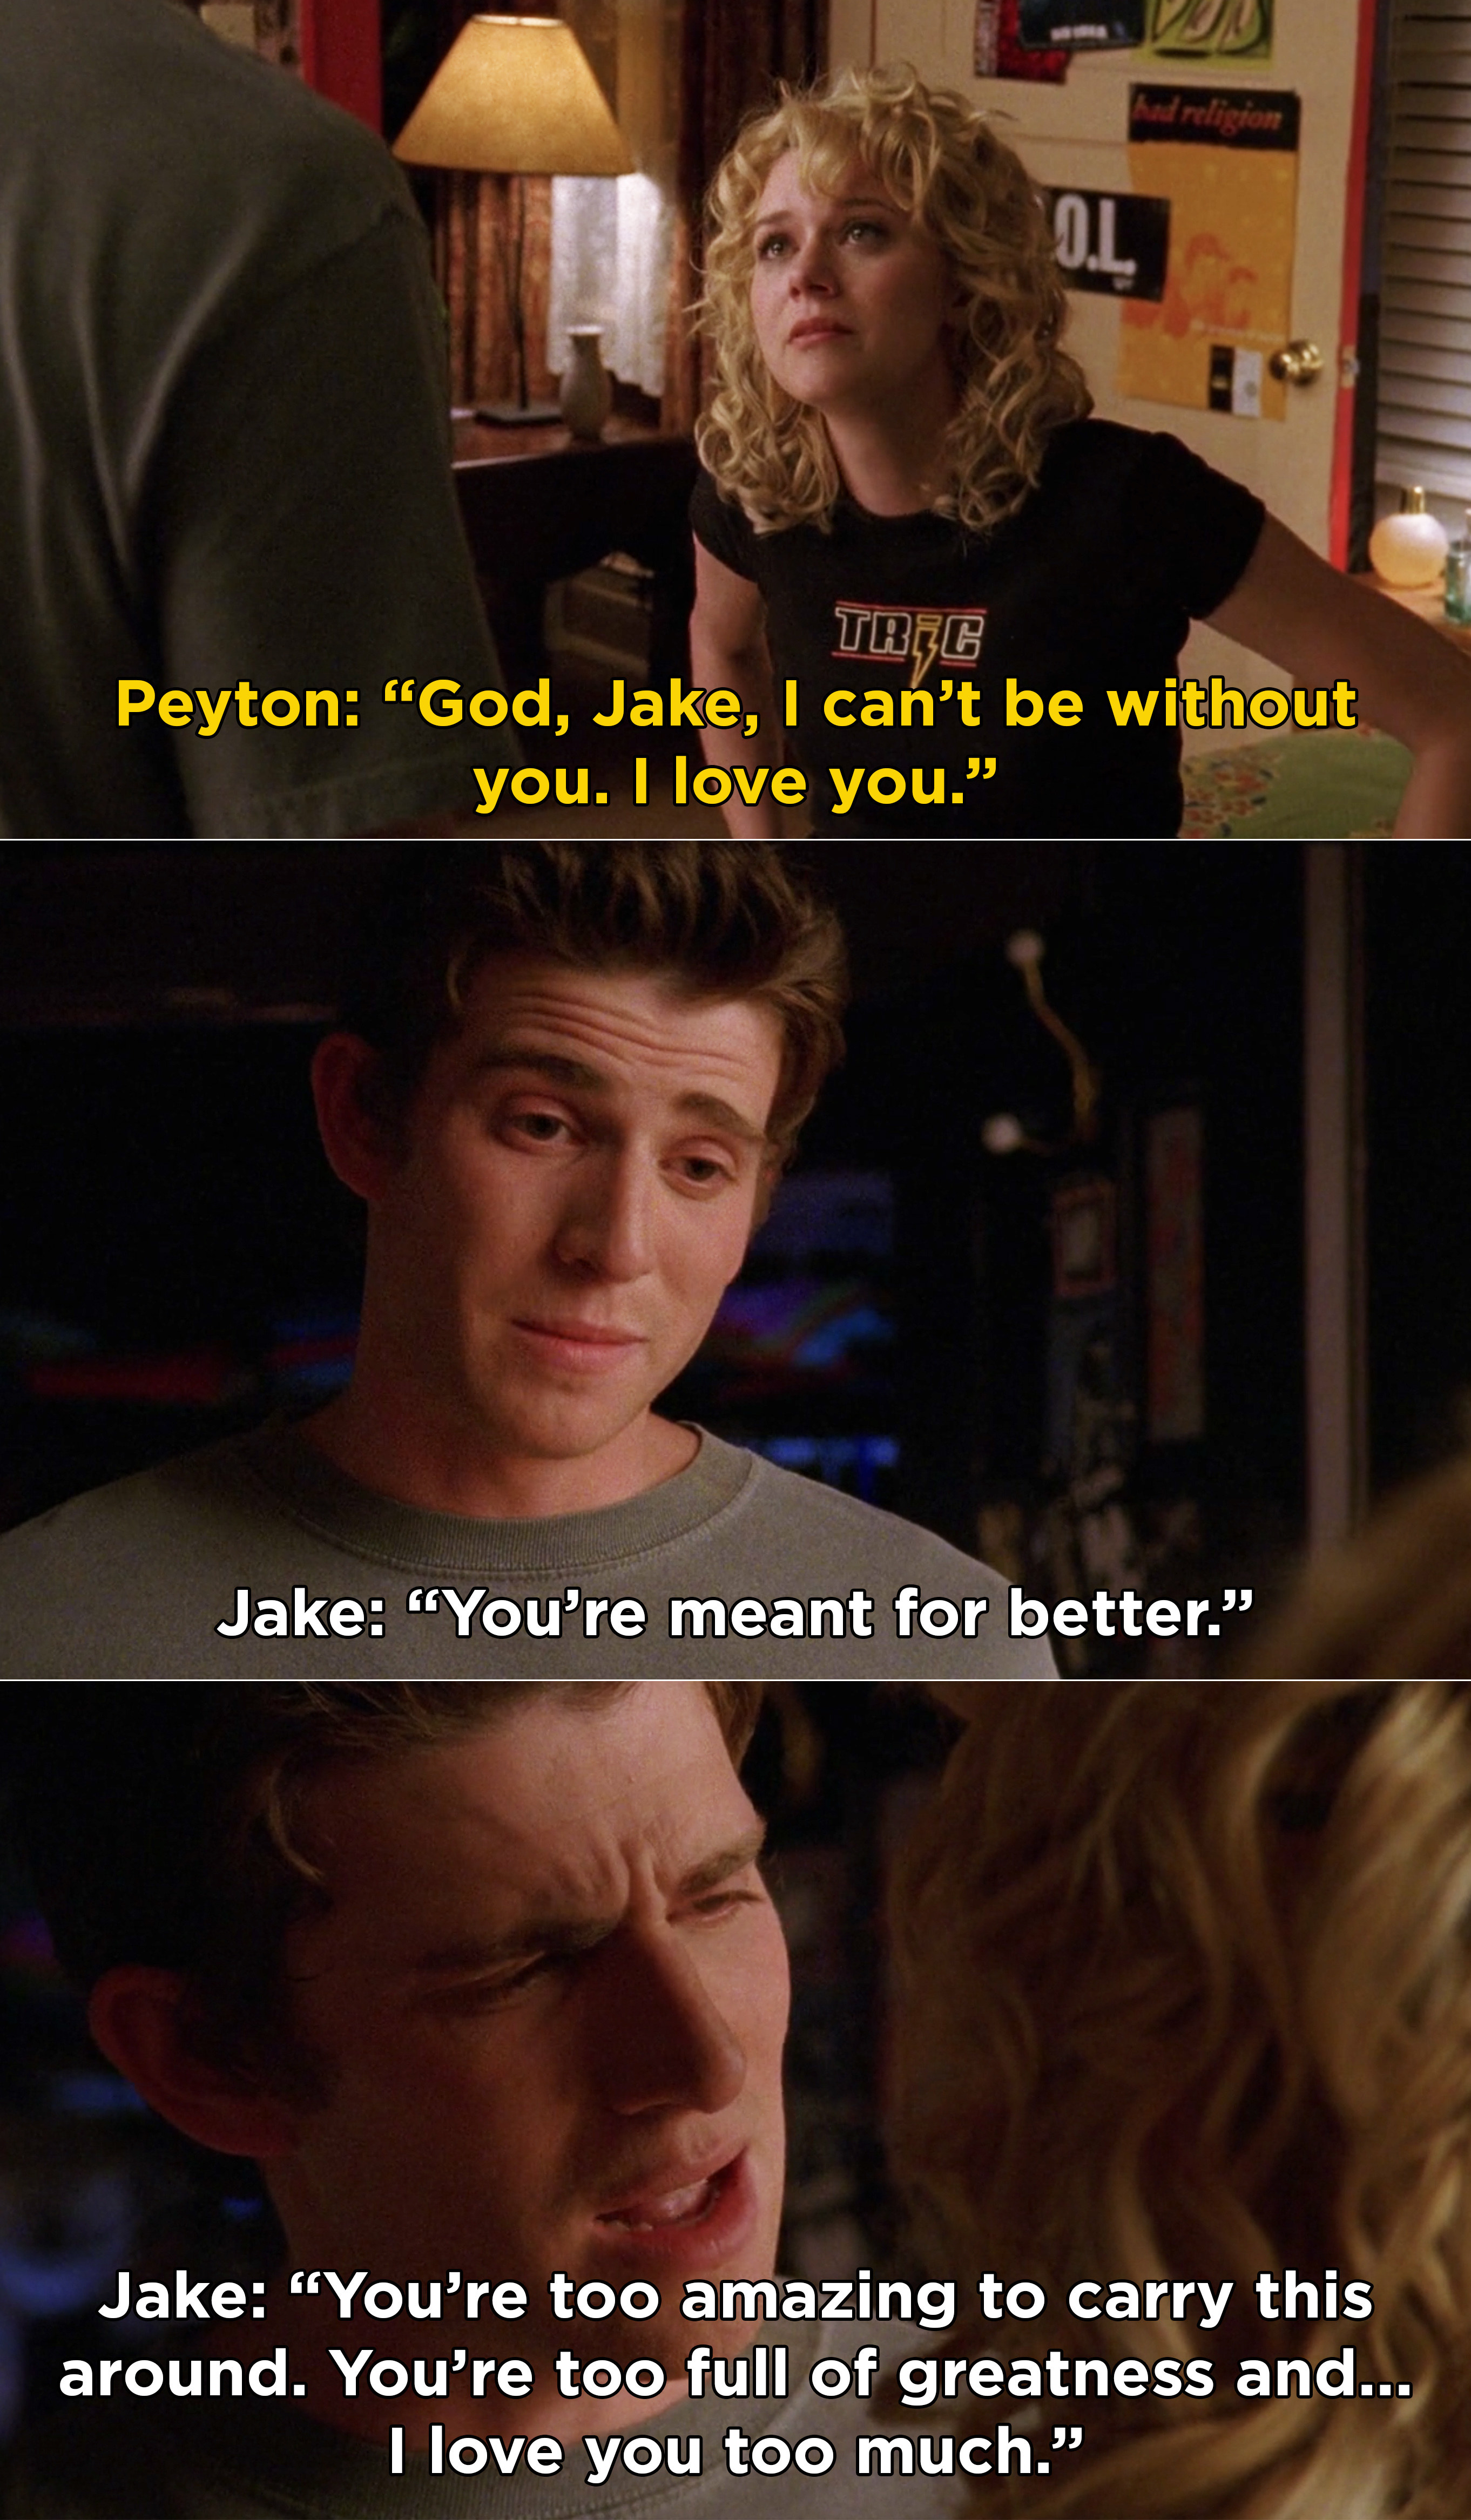 """Peyton telling Jake she loves him and can't live without him, and Jake saying that she was meant for better and is """"too full of greatness"""""""